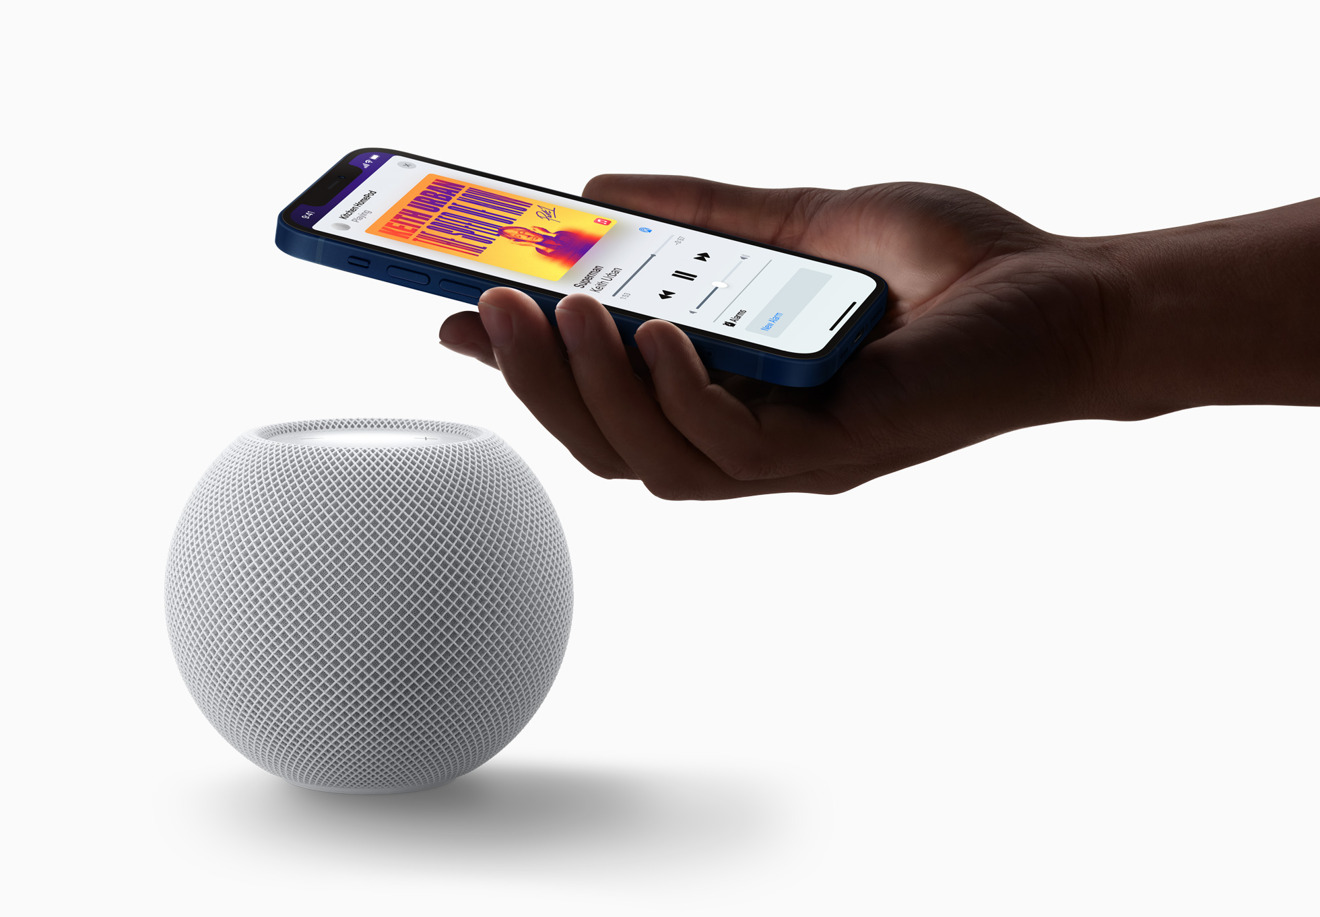 You can still hand off music by moving an iPhone nearby the HomePod mini.